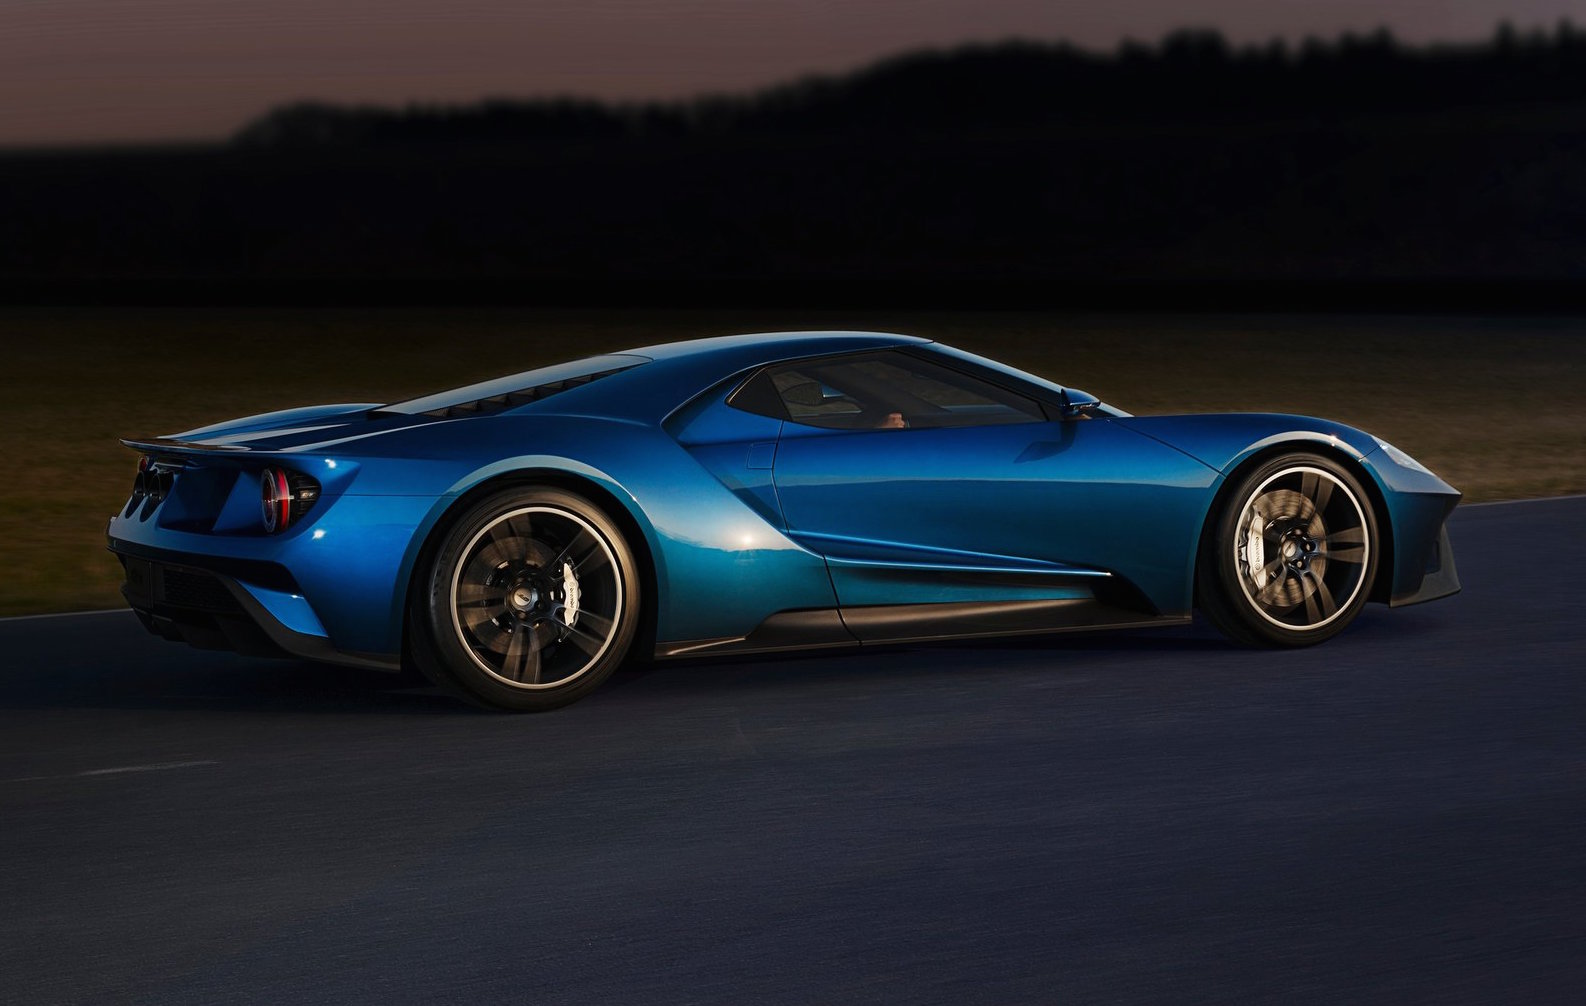 Despite Its Modern Construction High Tech Twin Turbo Powertrain And More Than A Decade Separating It From Its Predecessor The New Ford Gt Sips Fuel At A